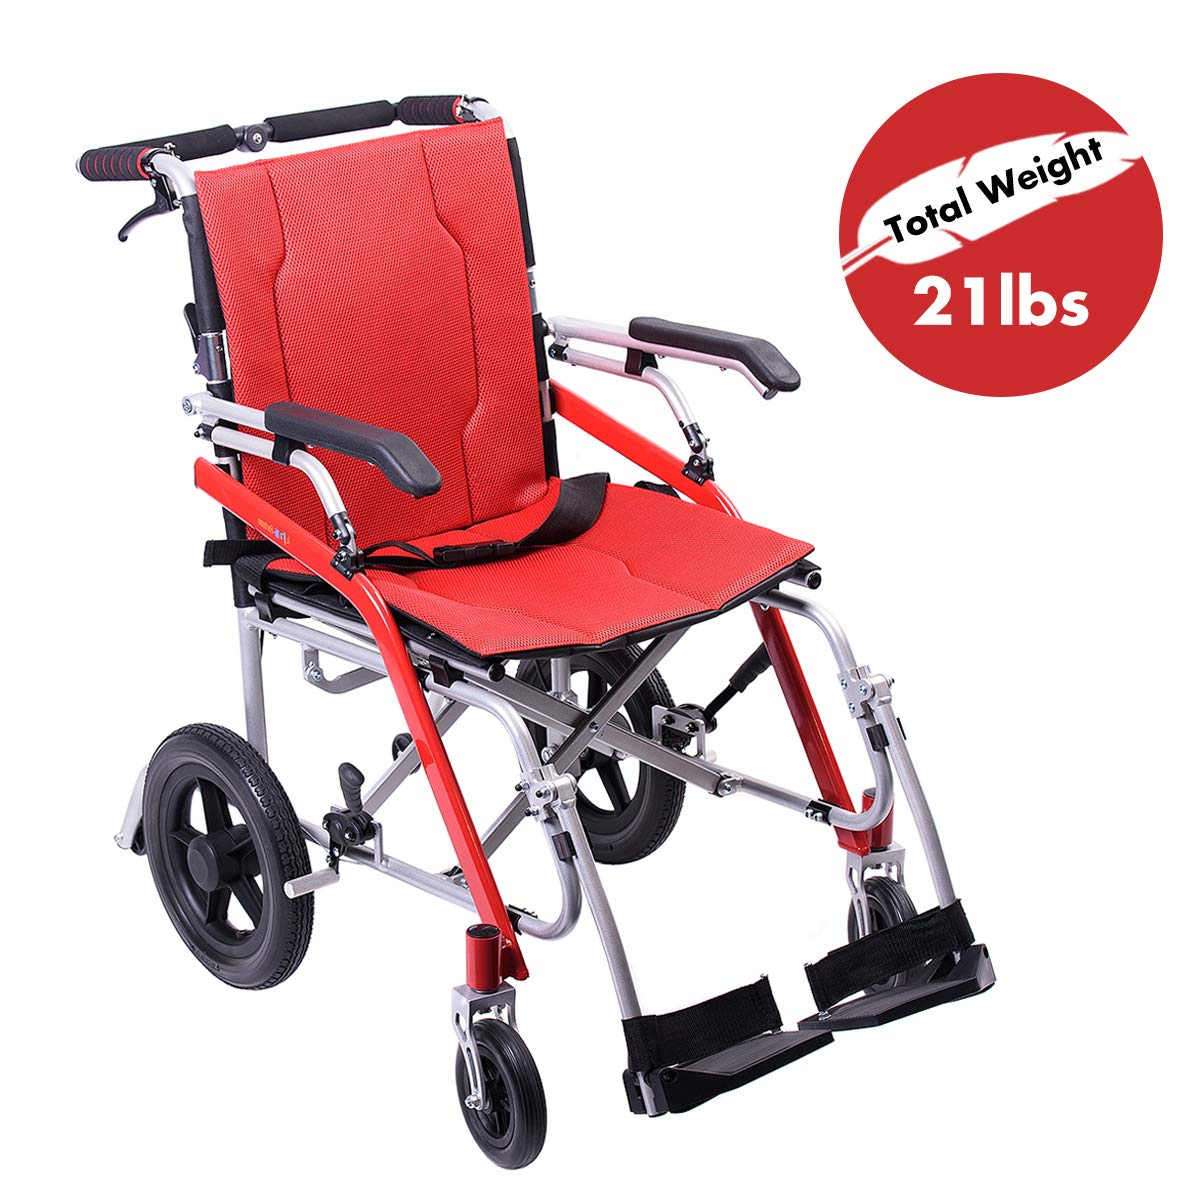 Hi-Fortune 21 lbs Lightweight Transport Medical Wheelchair with Adjustable Armrests and Hand Brakes, Portable and Folding with Magnesium Alloy, 18'' Seat, Red by Hi-Fortune